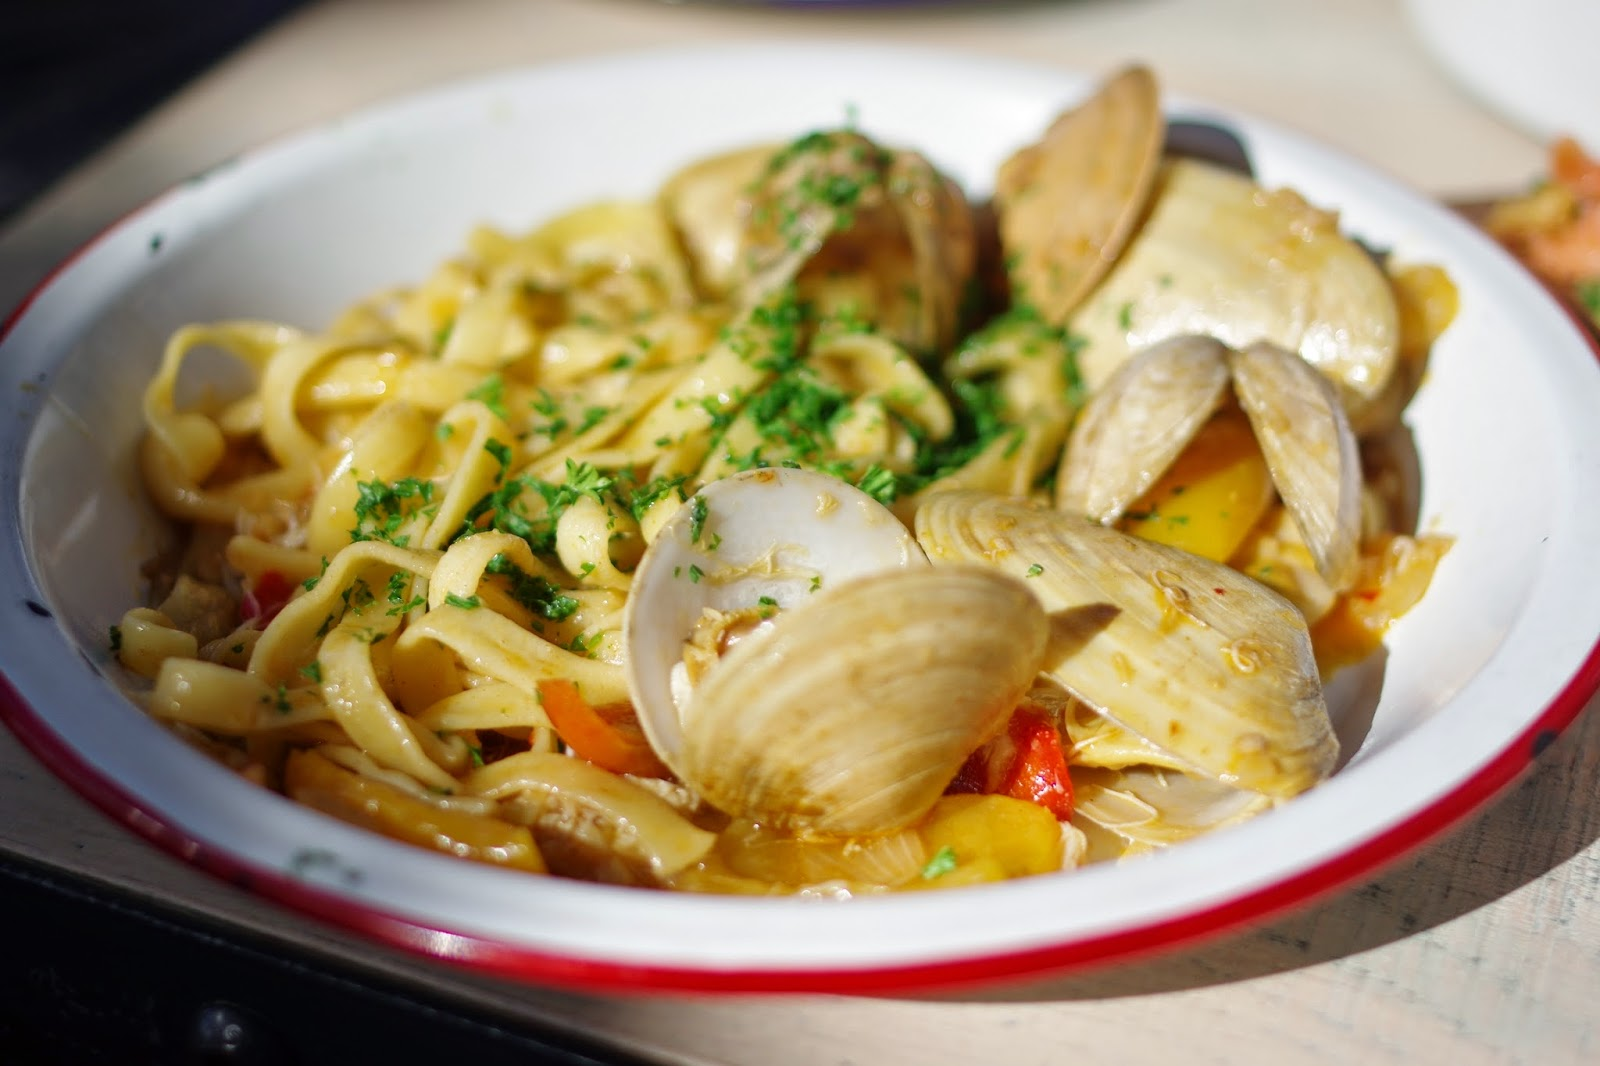 Crab and clam fettuccine. Yum.